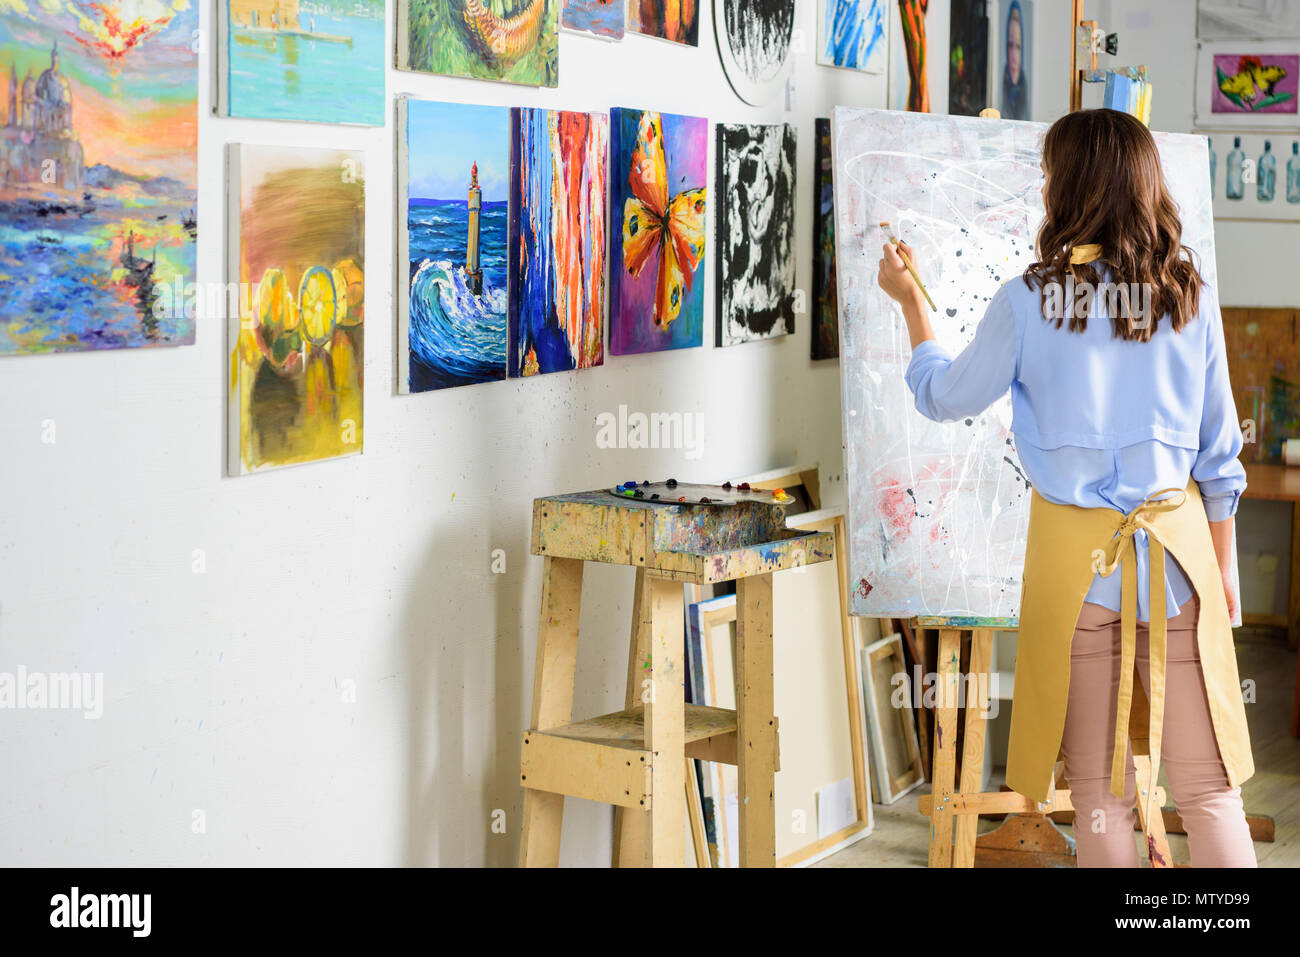 rear view of left-handed female artist painting on canvas in workshop - Stock Image